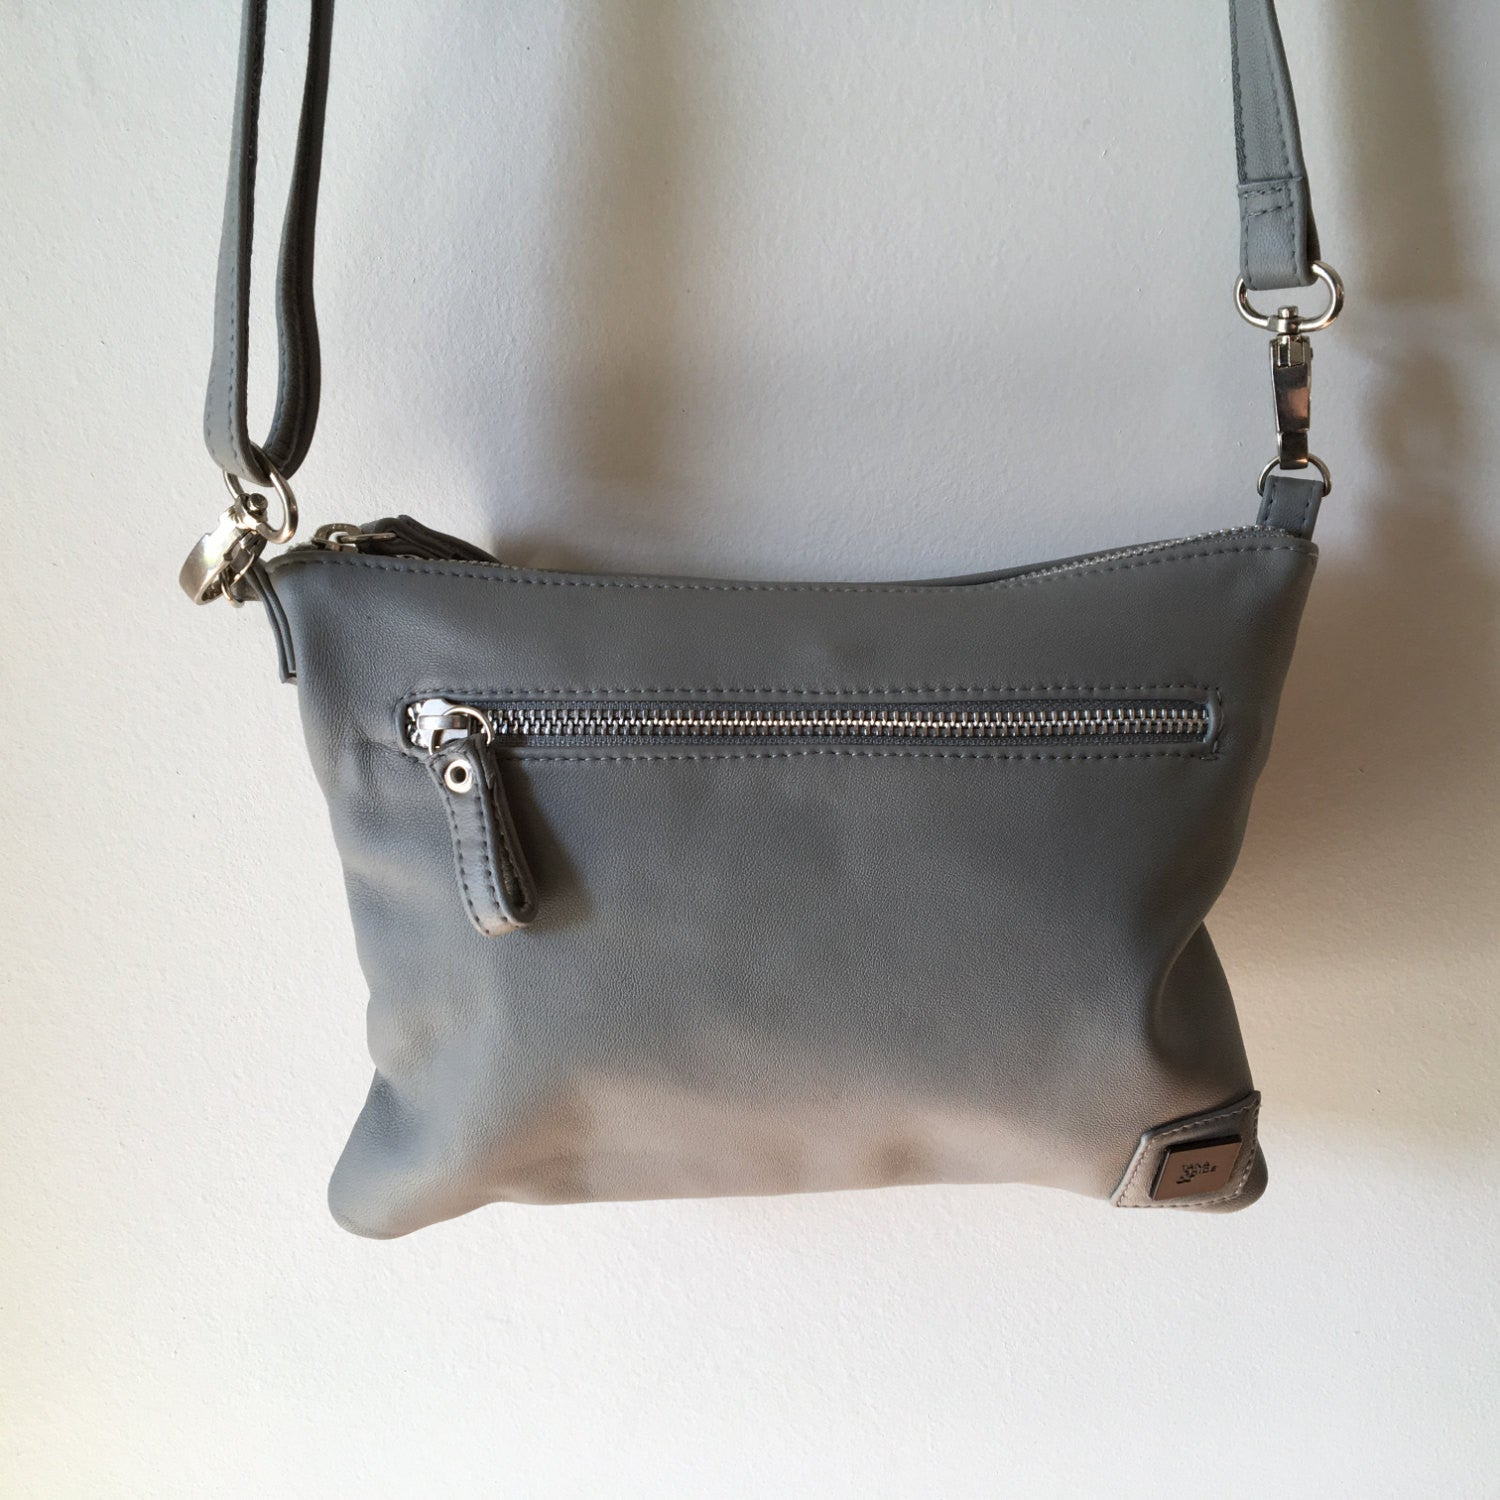 The Hipster - Leather crossbody bag with pocket. Simple yet stylish made  from soft leather